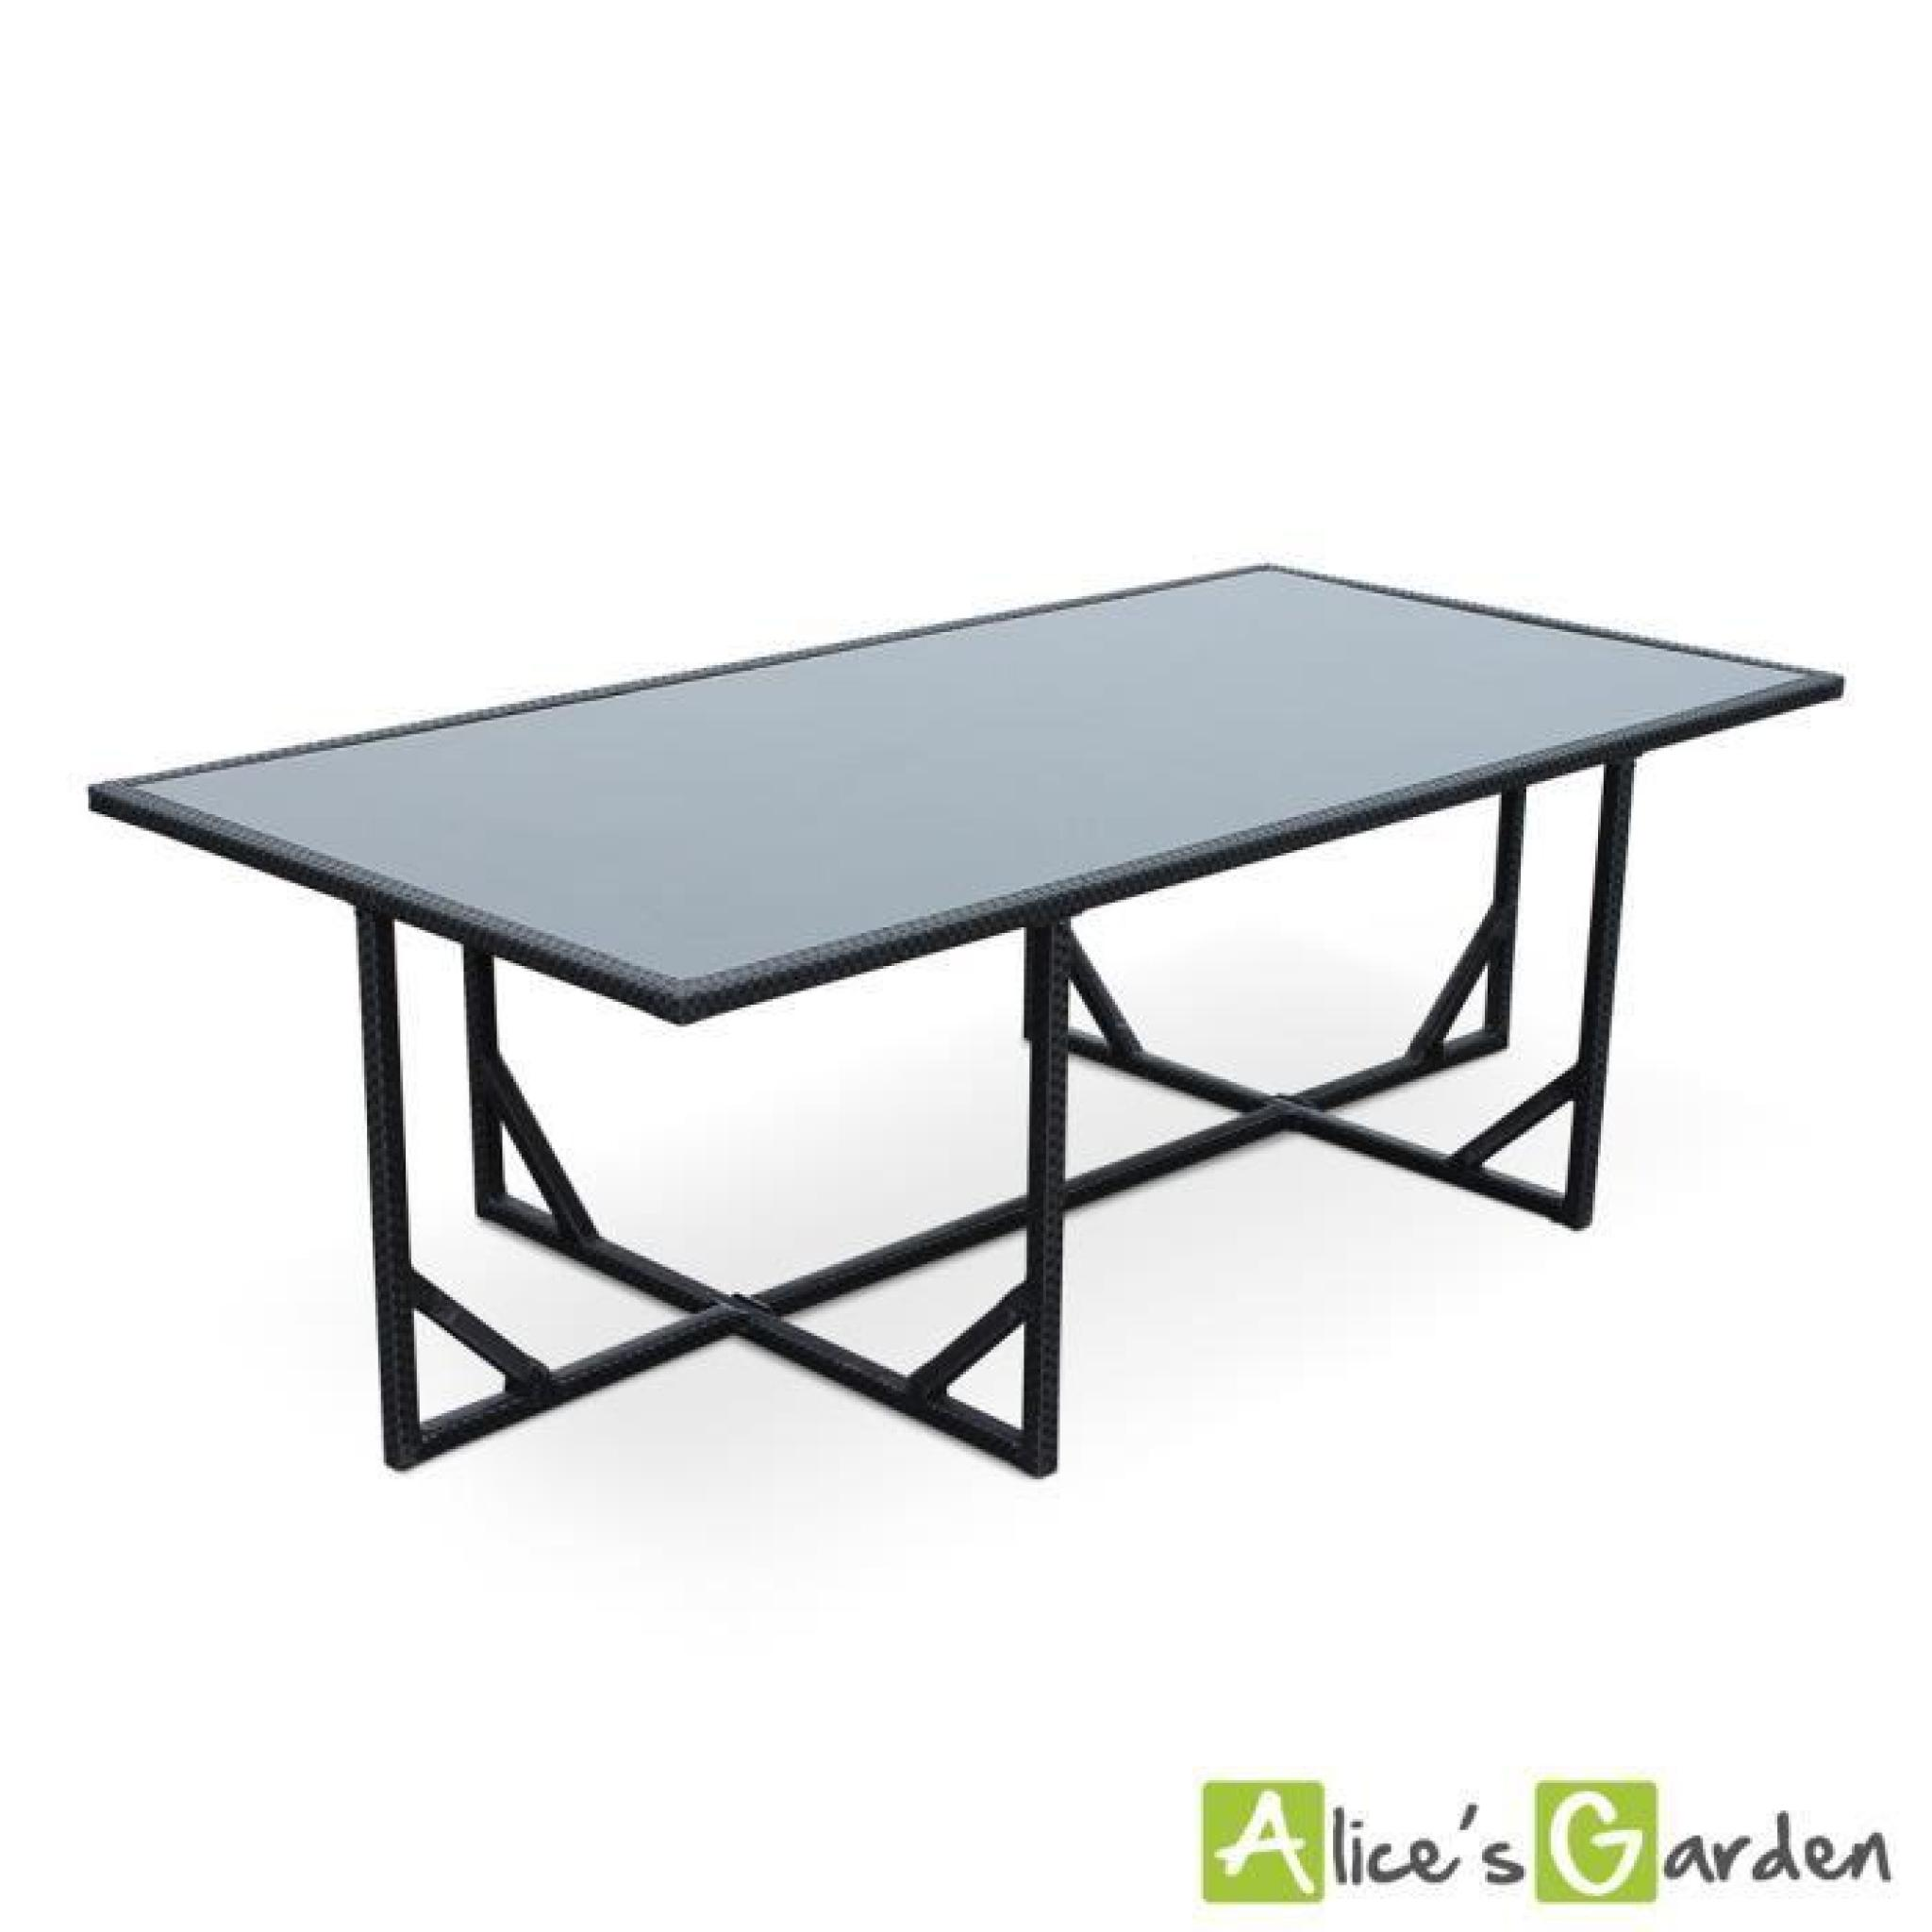 Salon de jardin vasto noir table en r sine tress e 8 12 places fauteuils e - Table de jardin resine tressee ...